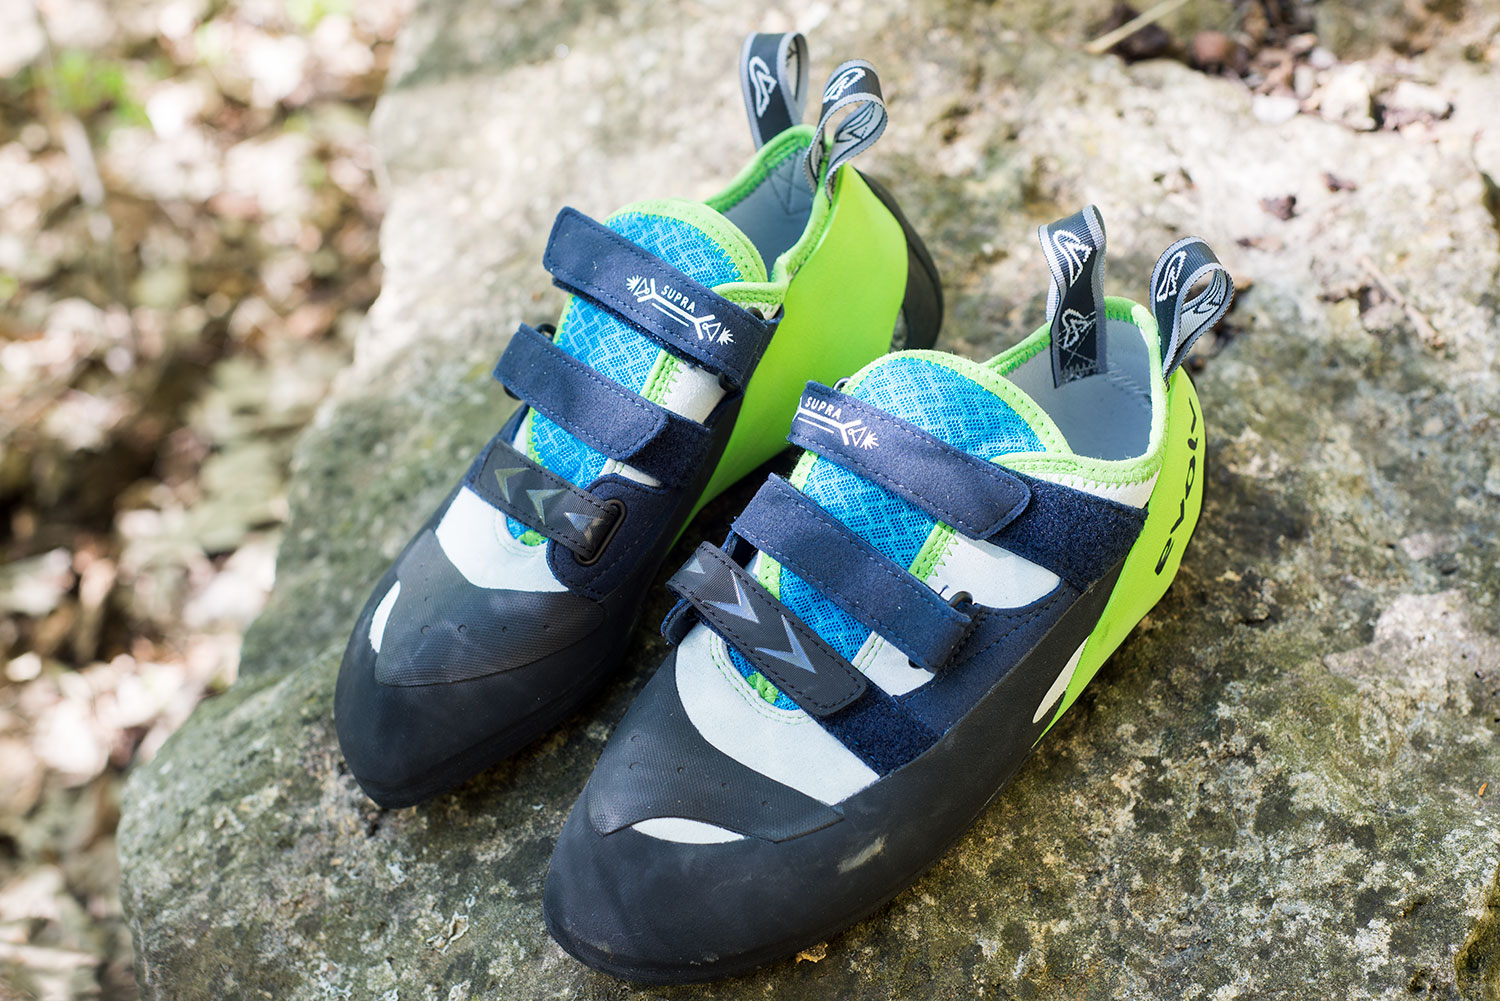 62a4a3a6195 The 10 Best New Rock Climbing Shoes: Review | Page 3 | GearJunkie